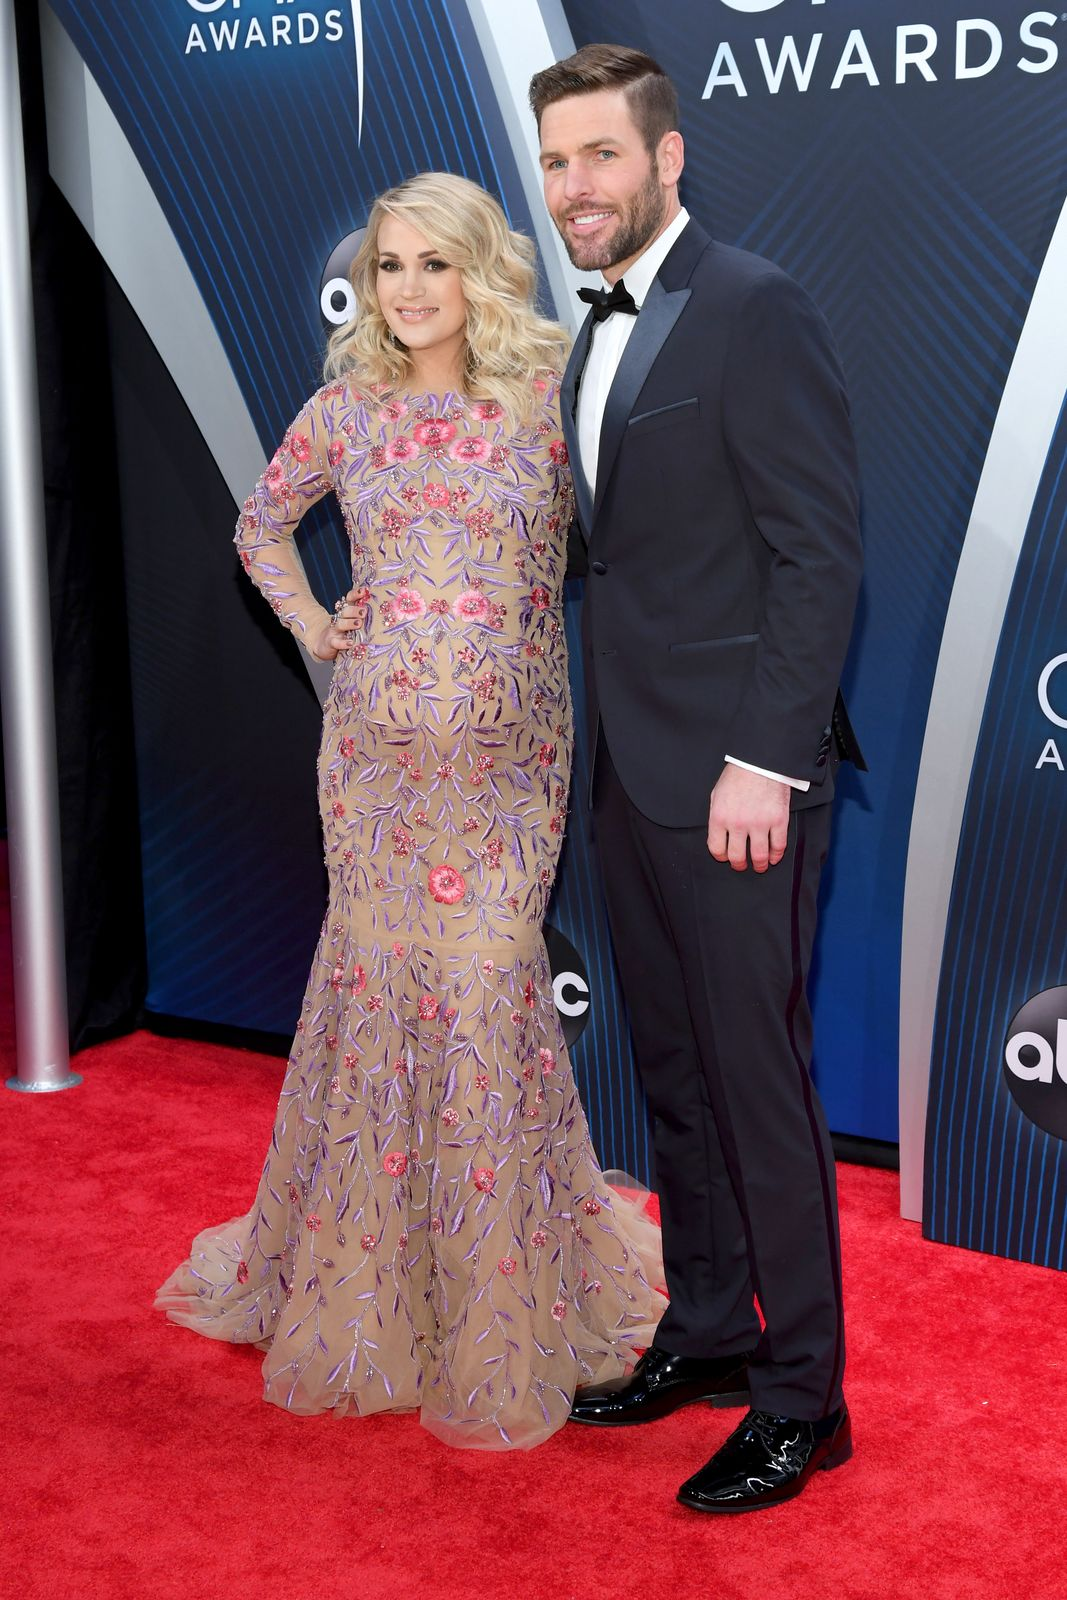 Carrie Underwood and Mike Fisher at the 52nd annual CMA Awards on November 14, 2018, in Nashville, Tennessee | Photo: Jason Kempin/Getty Images